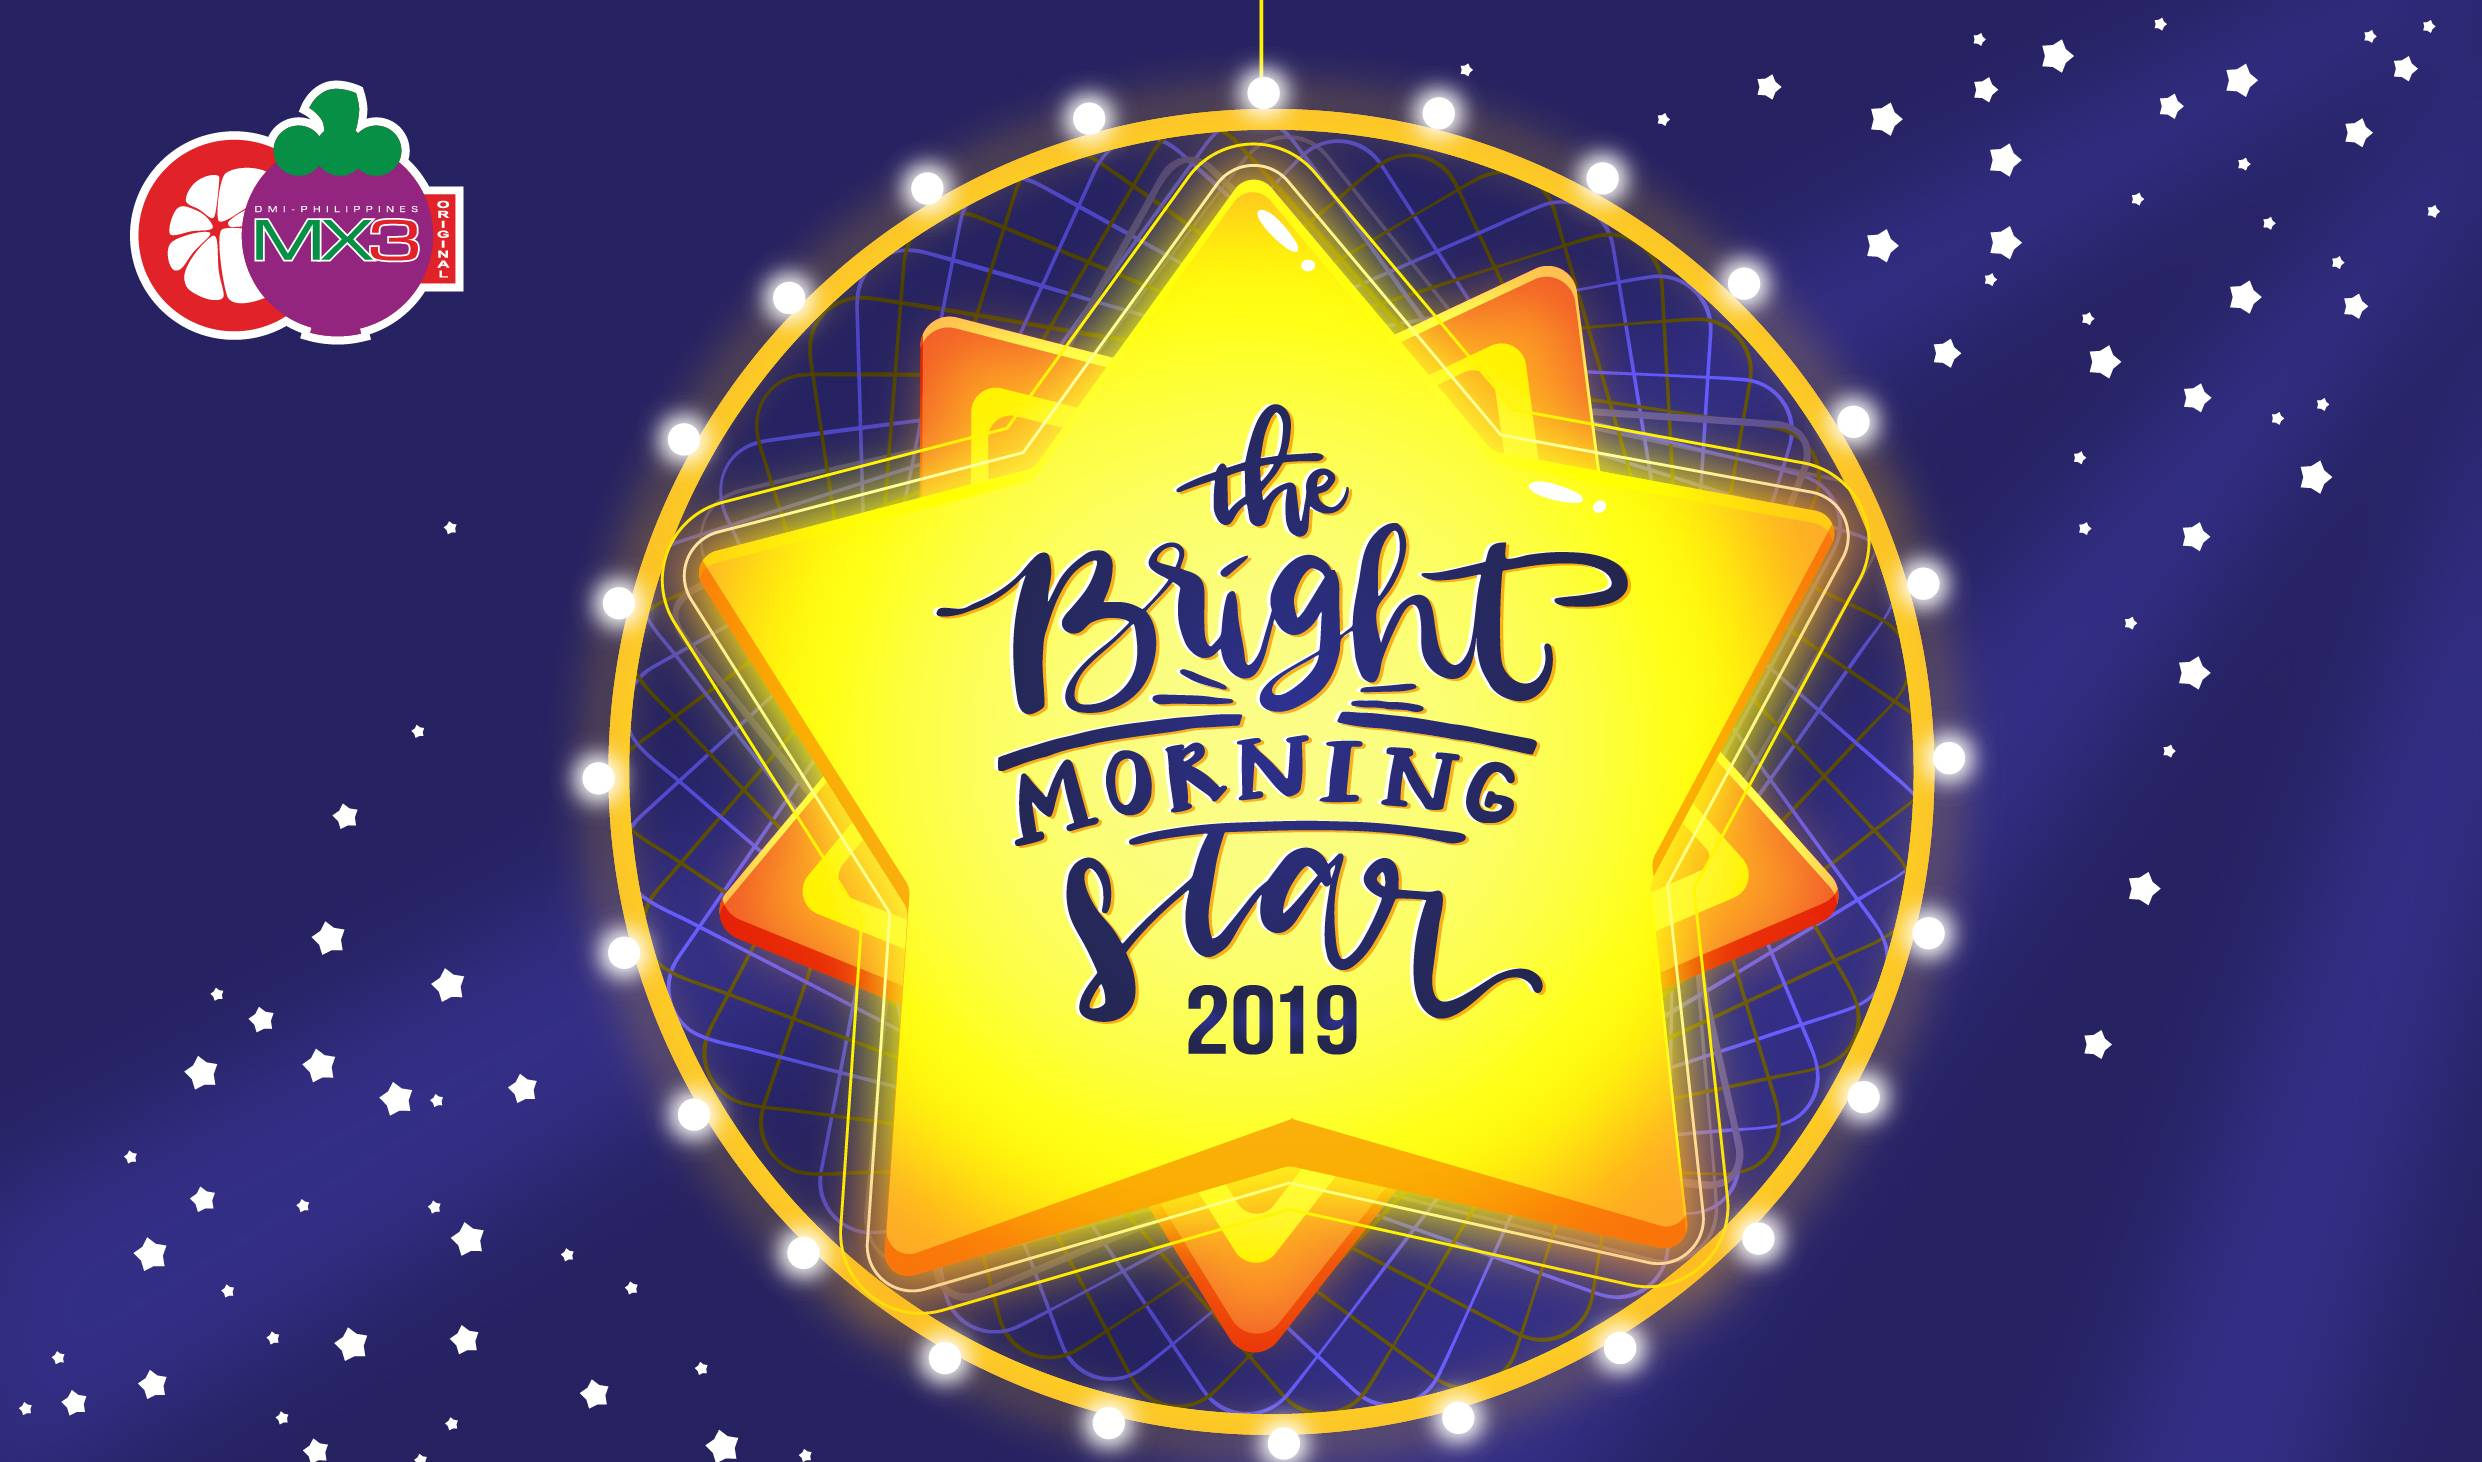 The Bright Morning Star 2019 Winners